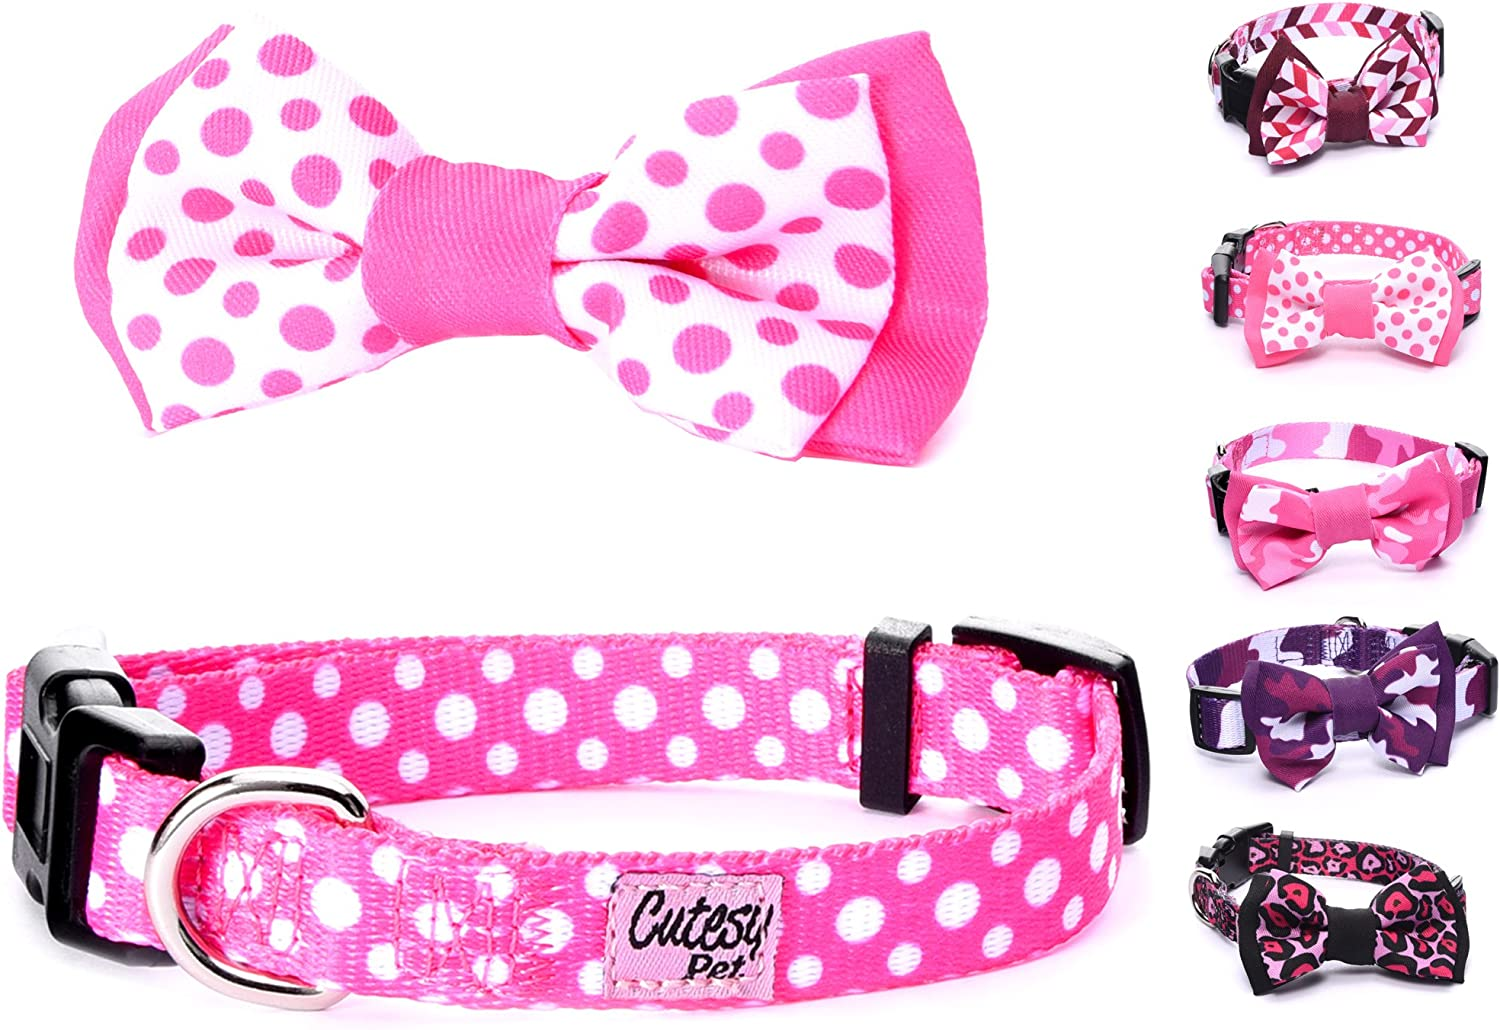 Cutesy Limited time Save money trial price Pet Dog Collar with Adjustable 4 Sizes Bow in Designs